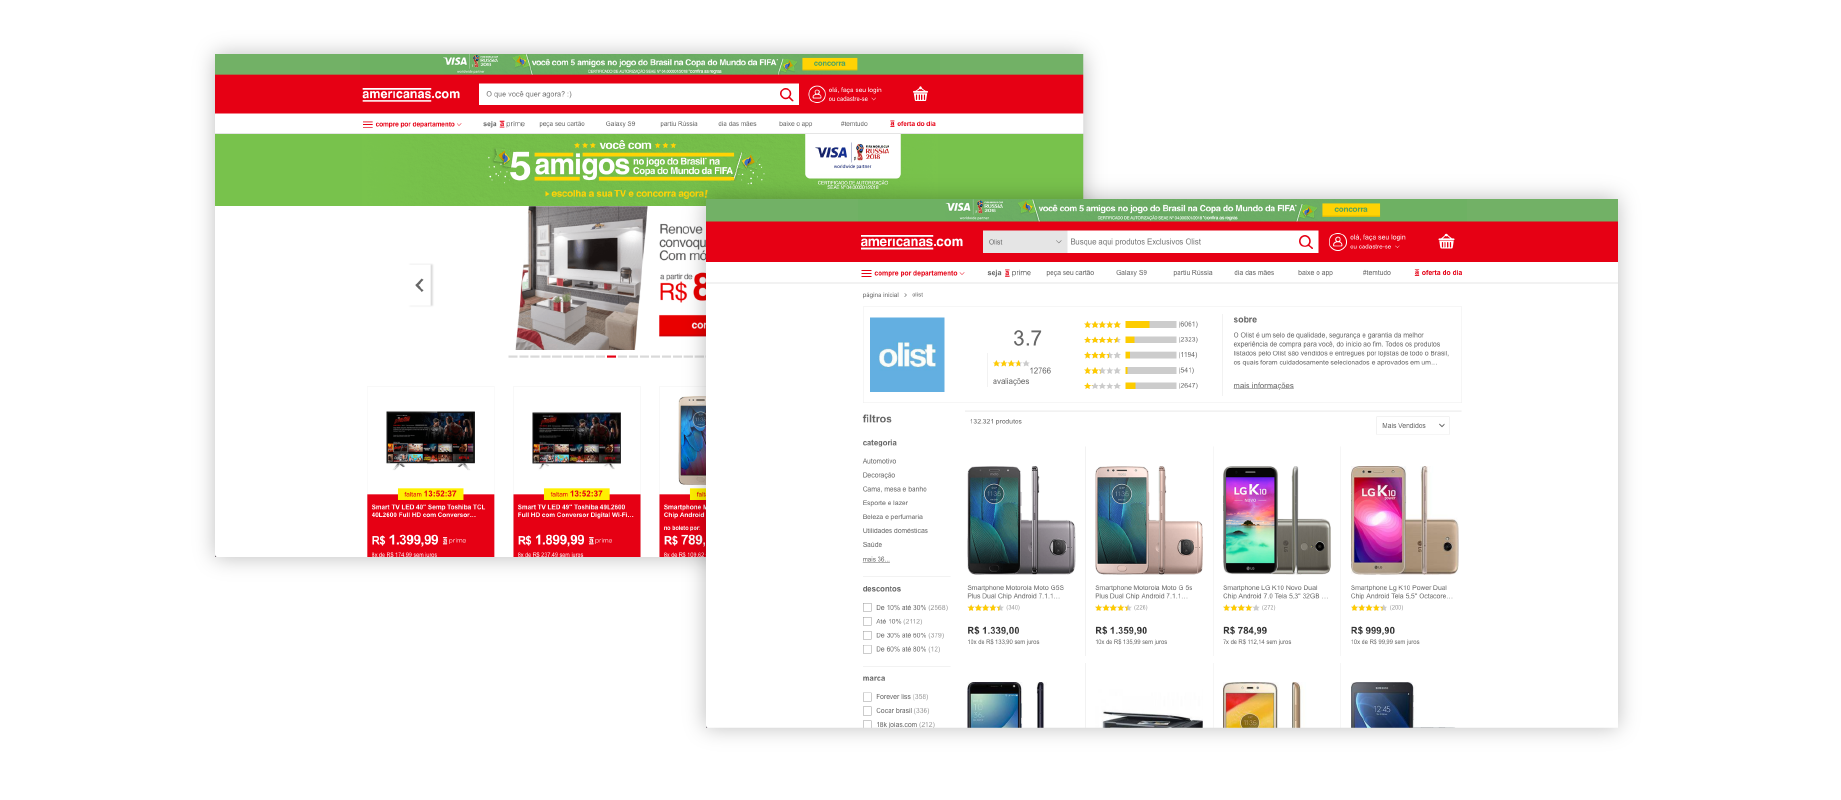 banners-site-marketplaces-americanas_Screenshots.png